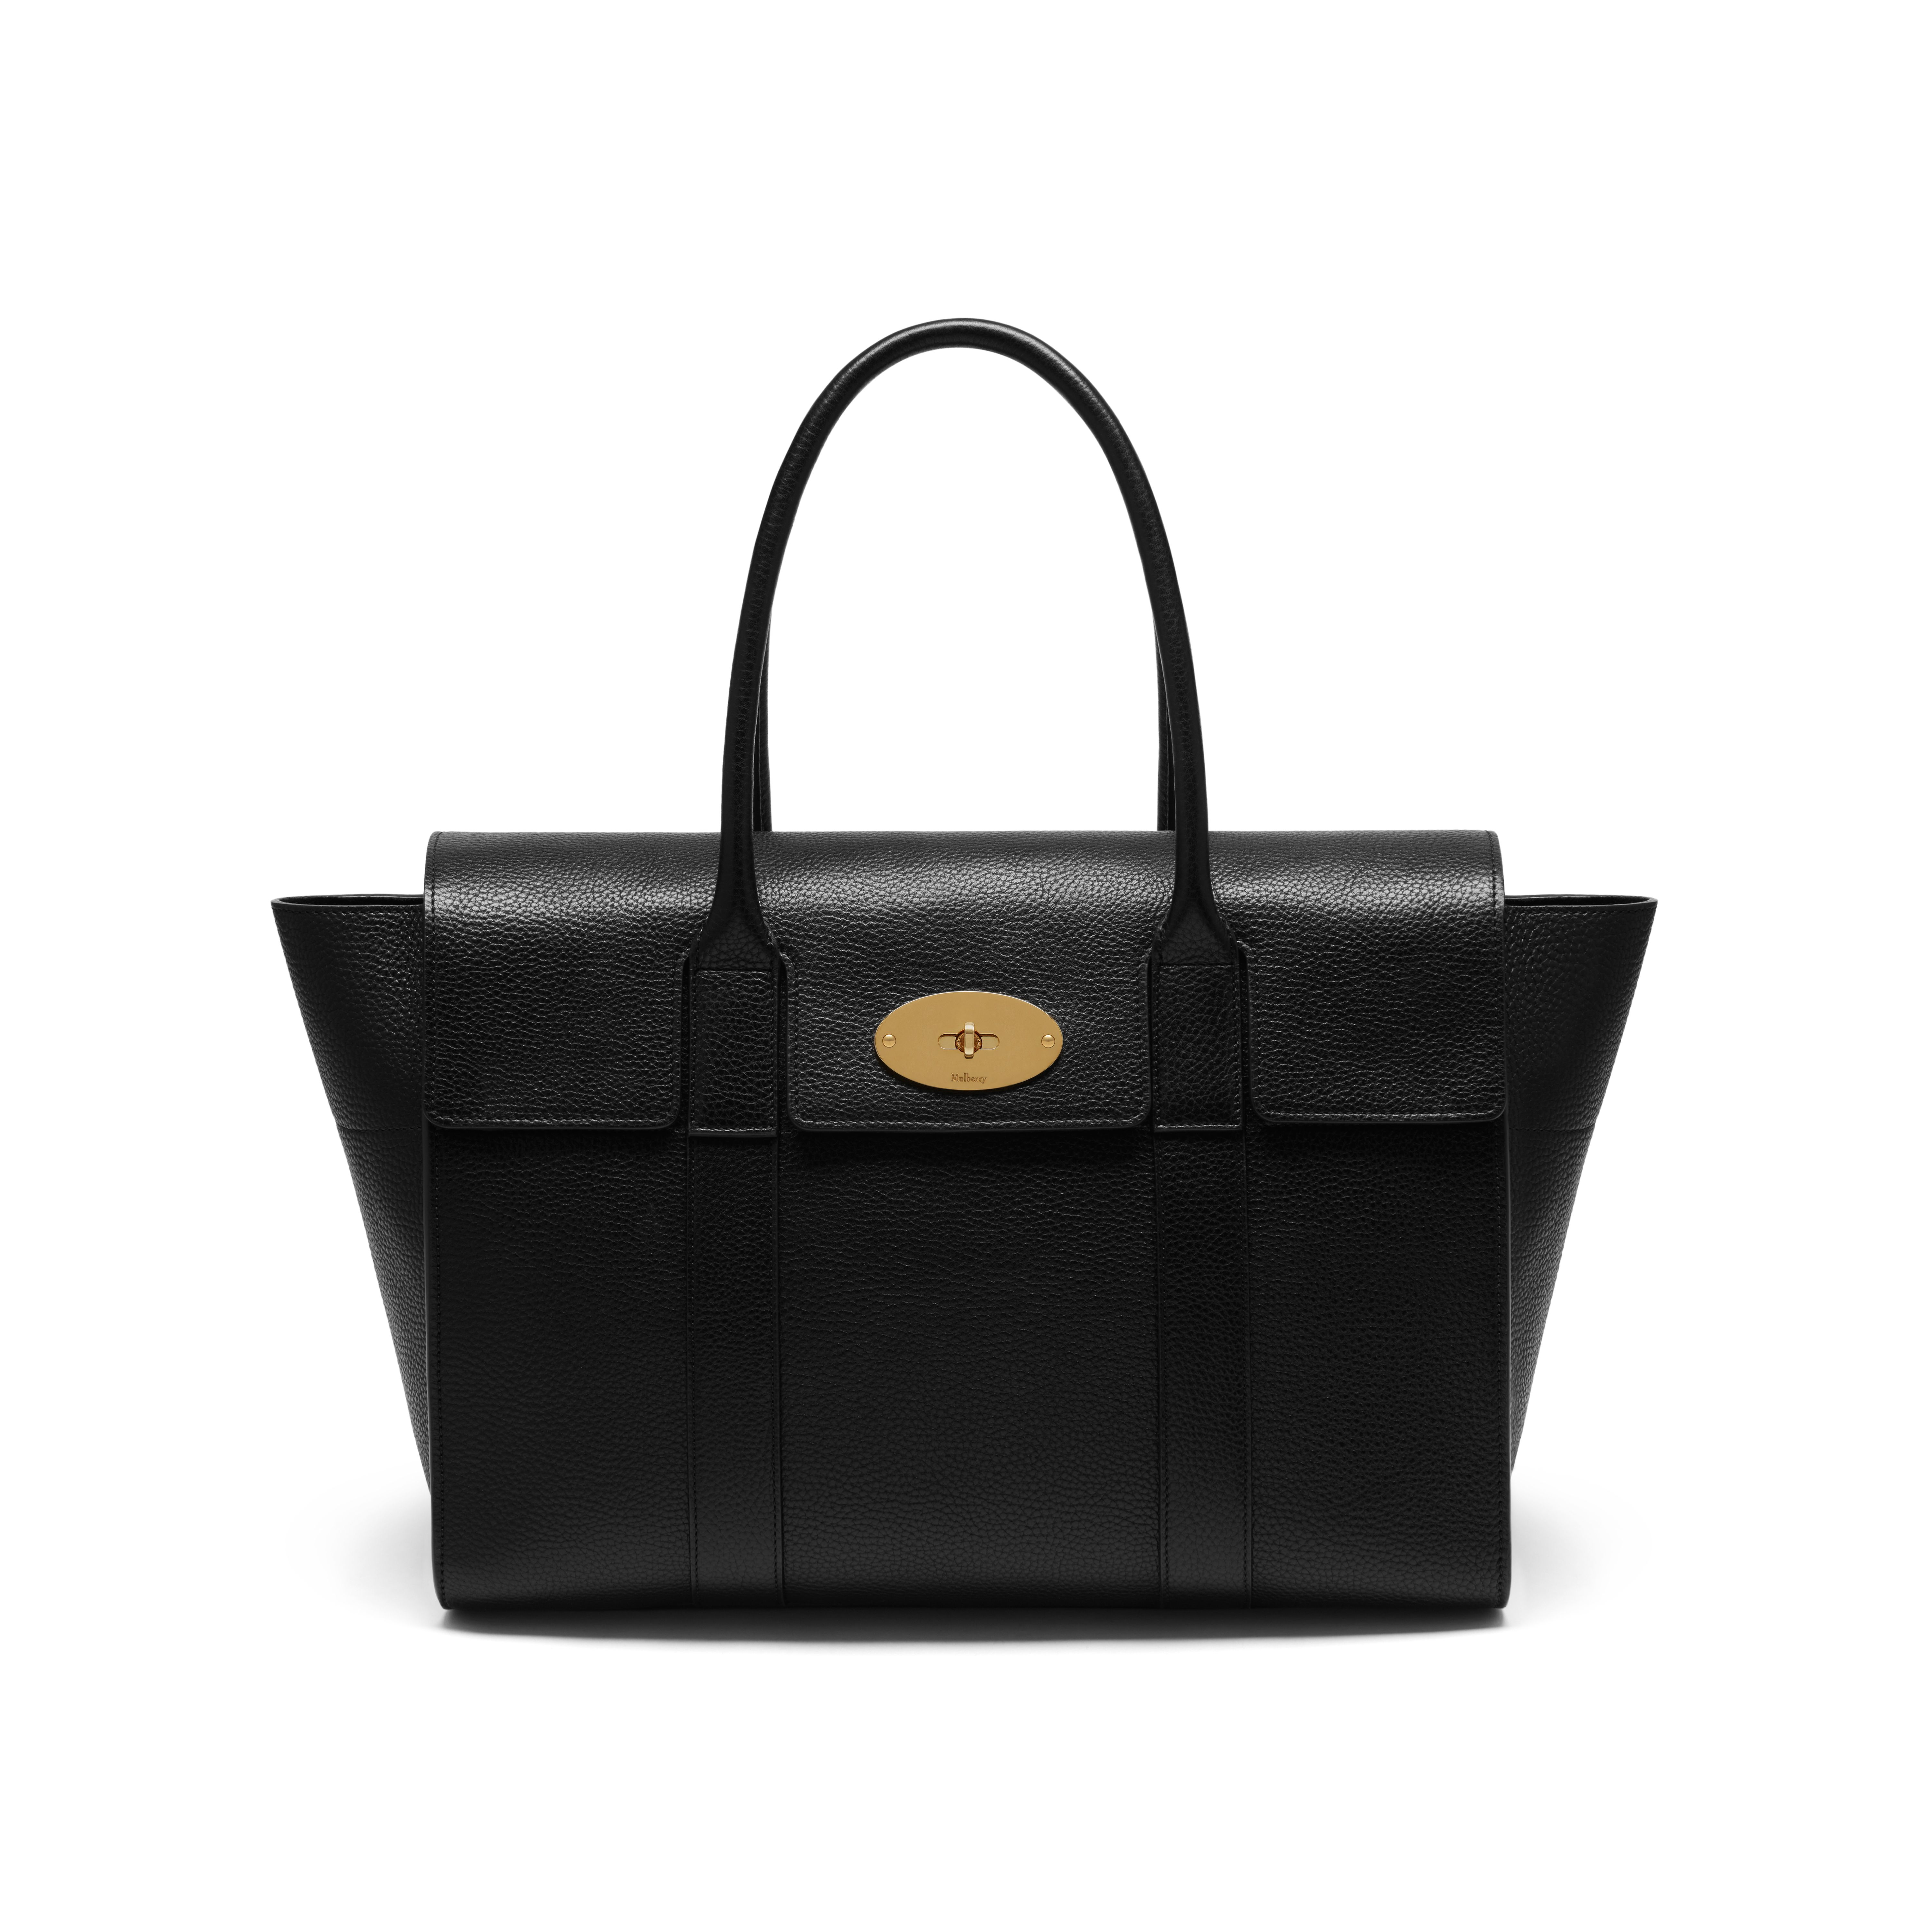 Mulberry new bayswater leather bag in black lyst for The bayswater